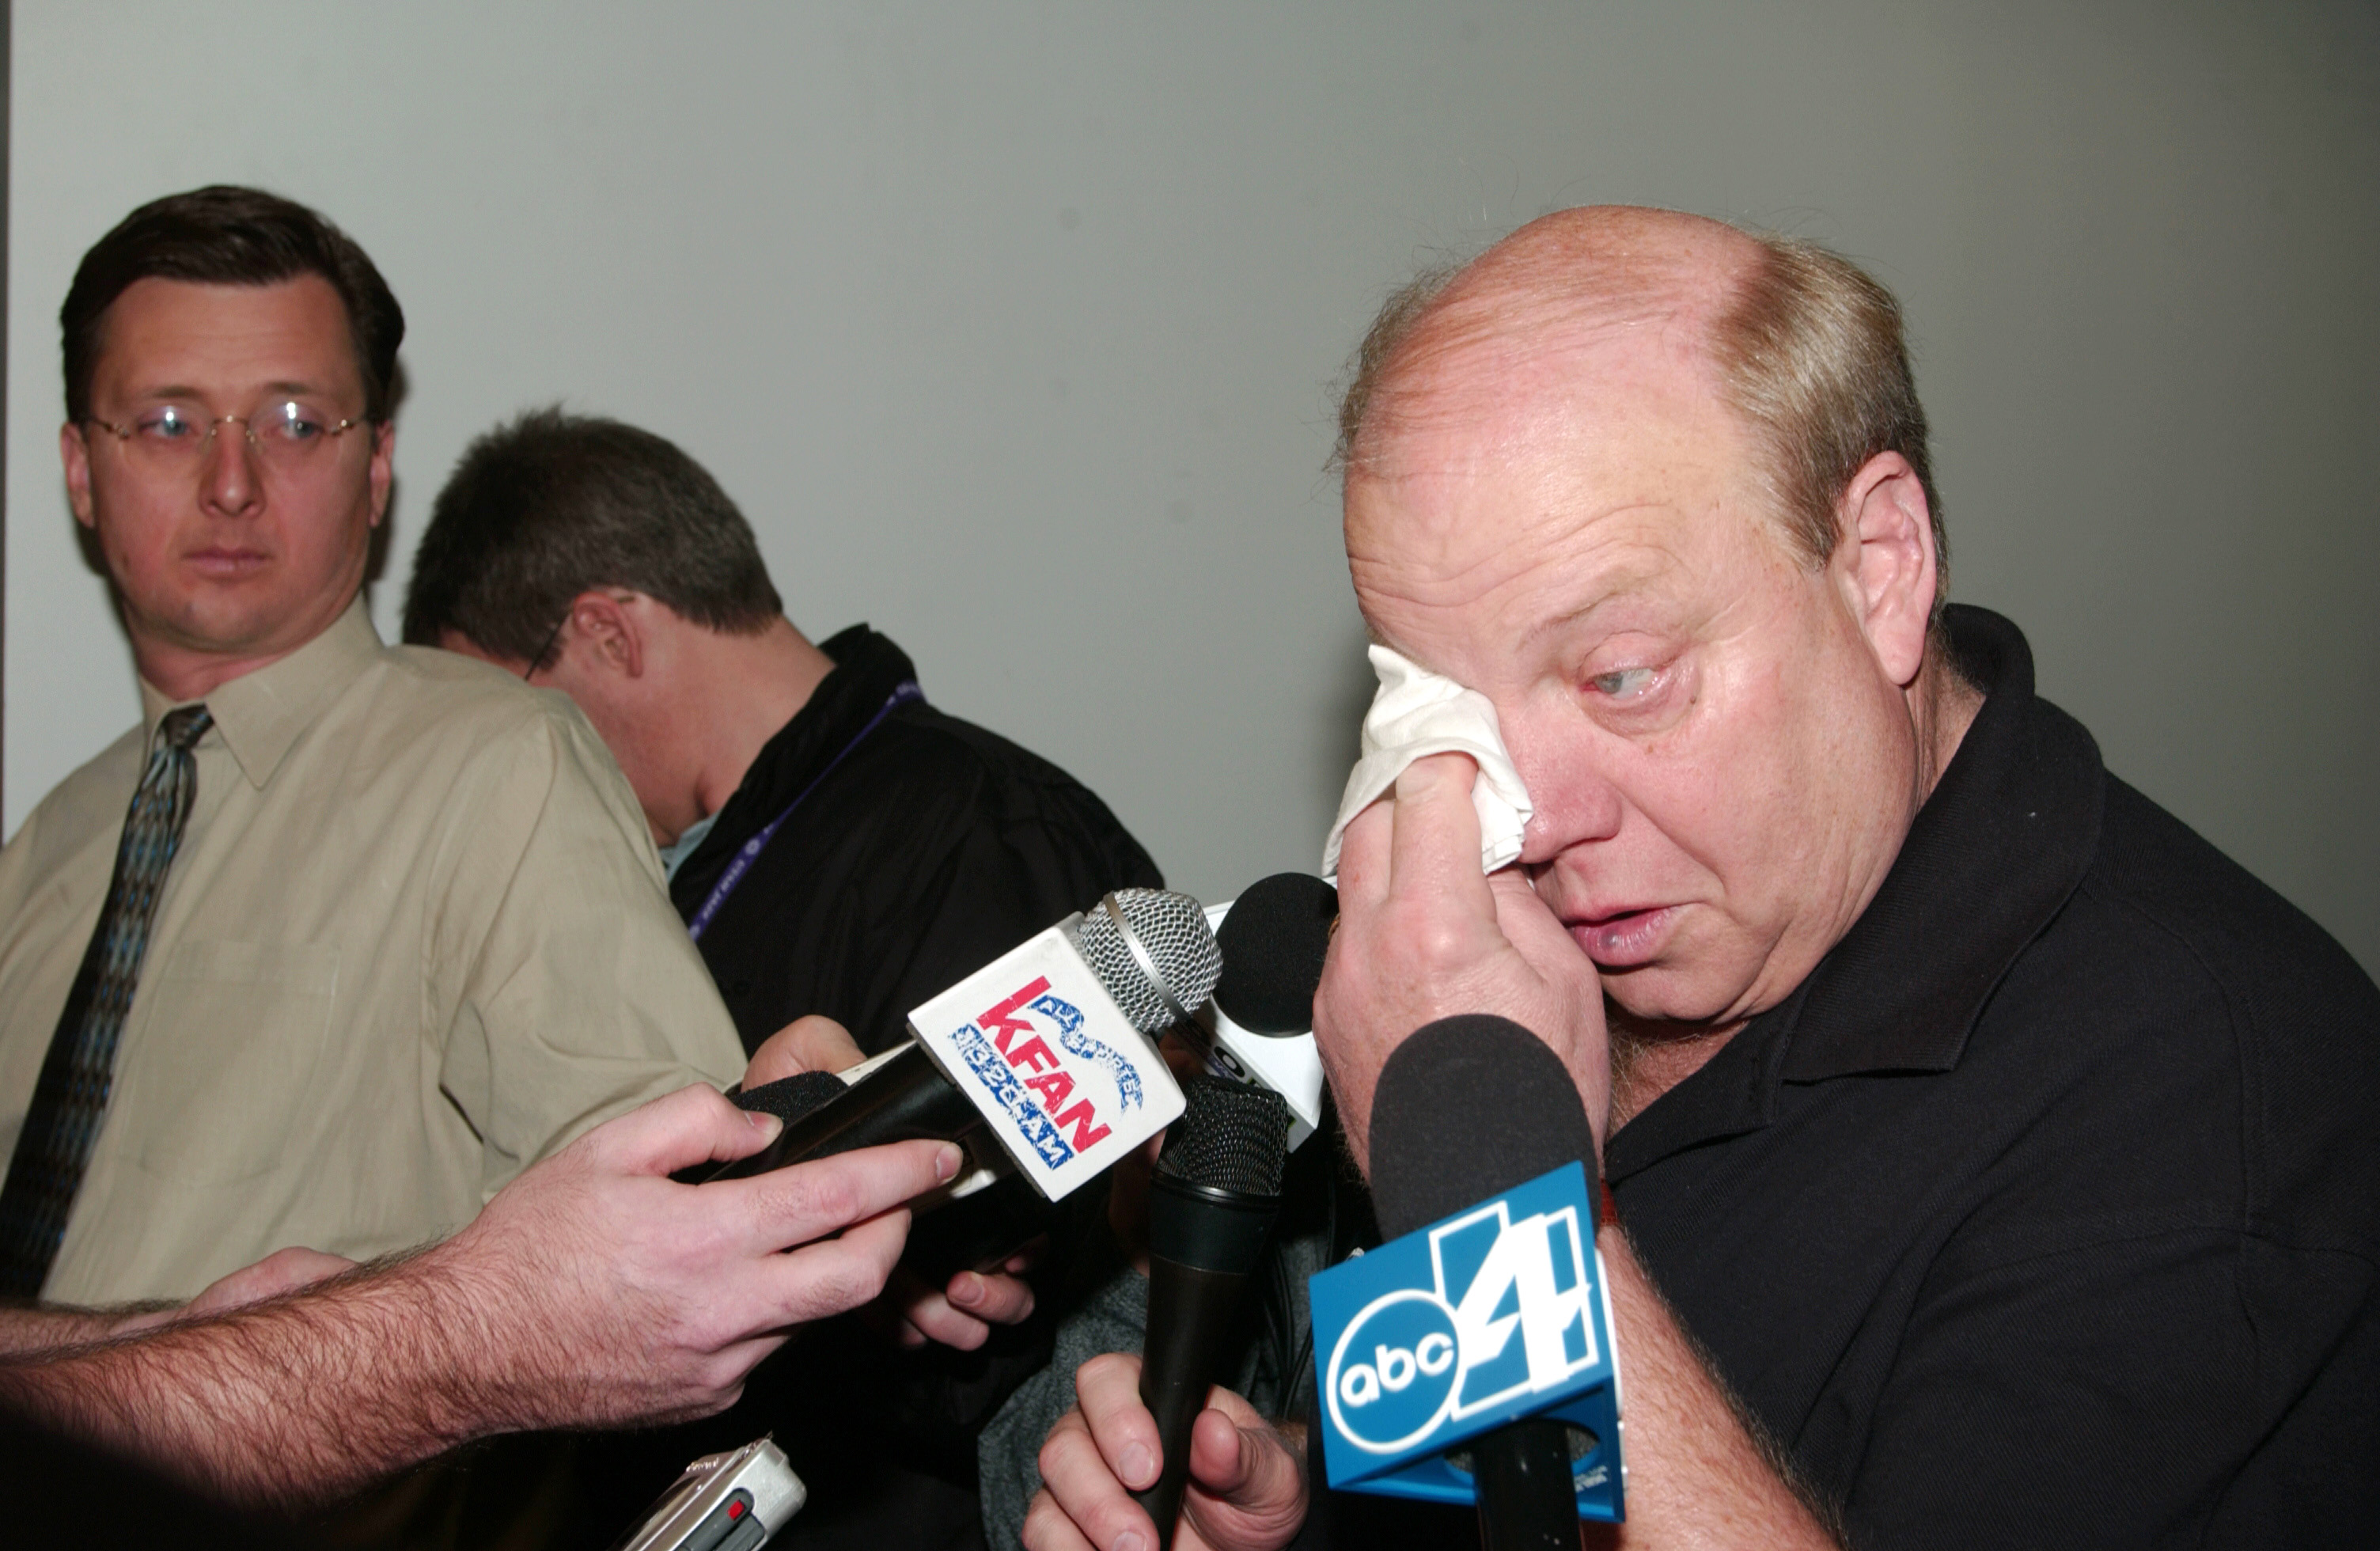 Larry H. Miller of the Utah Jazz wipes away a tear as he speaks to the media in 2003